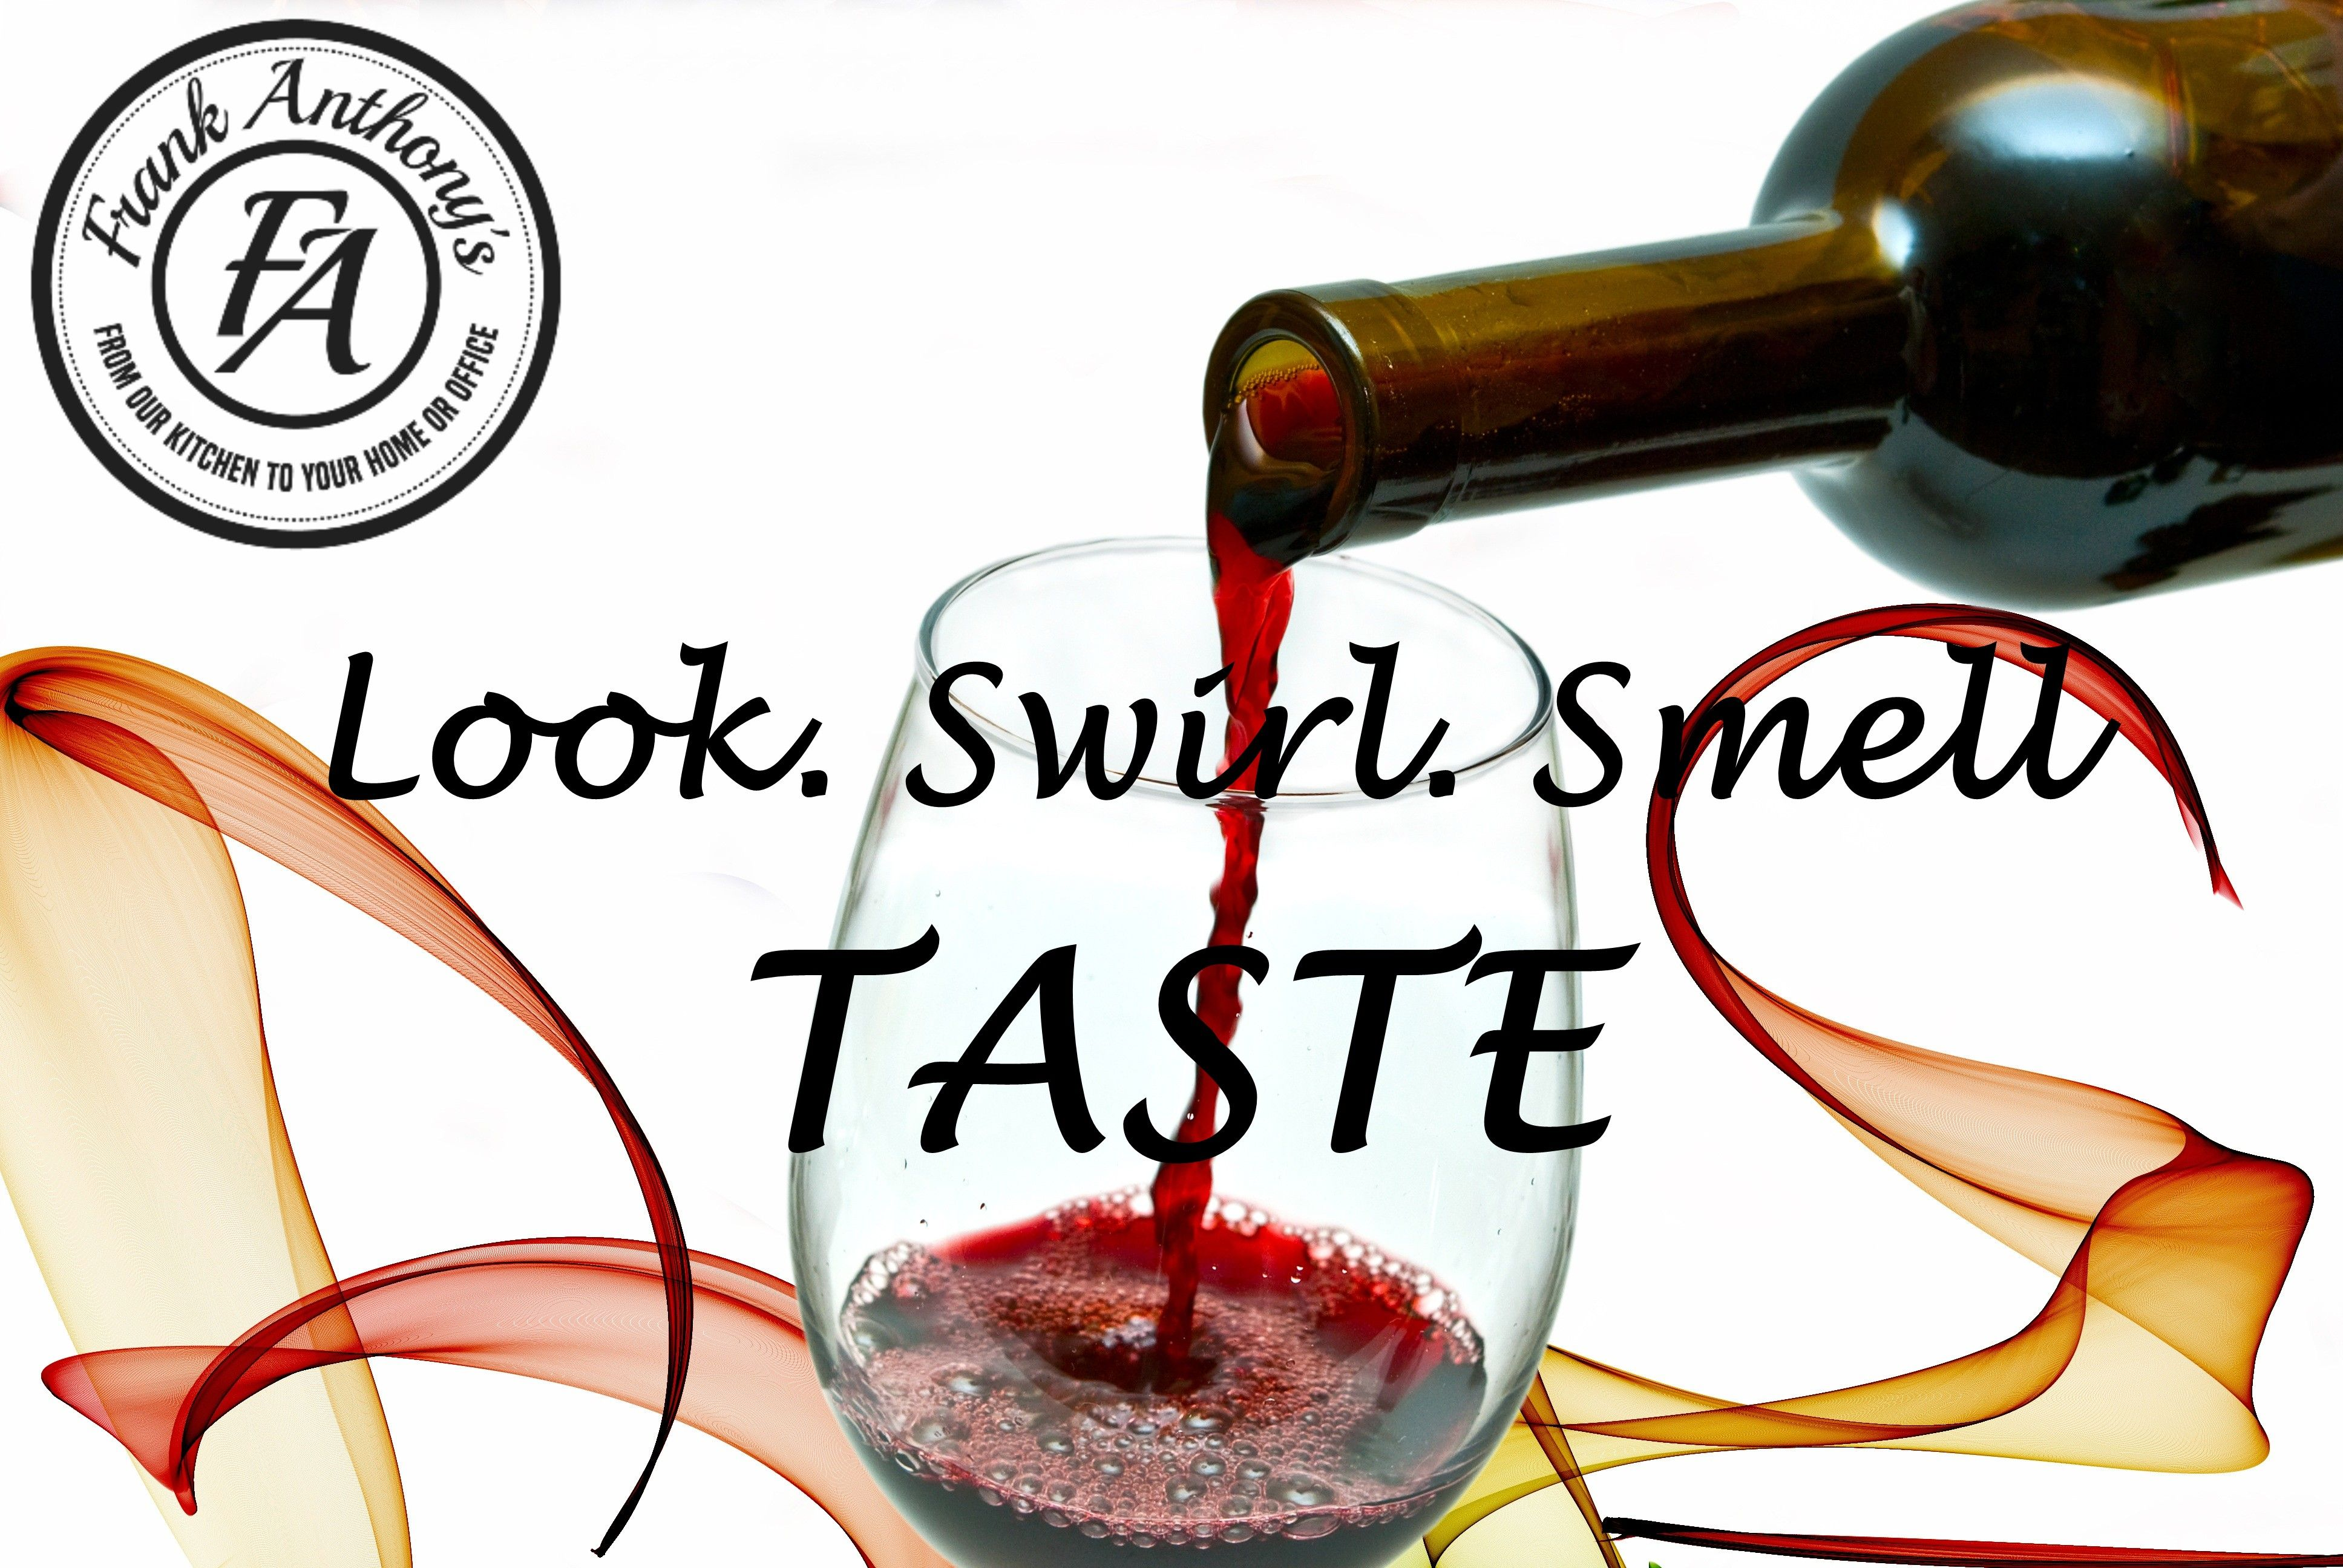 Join us on Friday, January 26th 4 p.m. - 7 p.m. for Our Wine Tasting ...